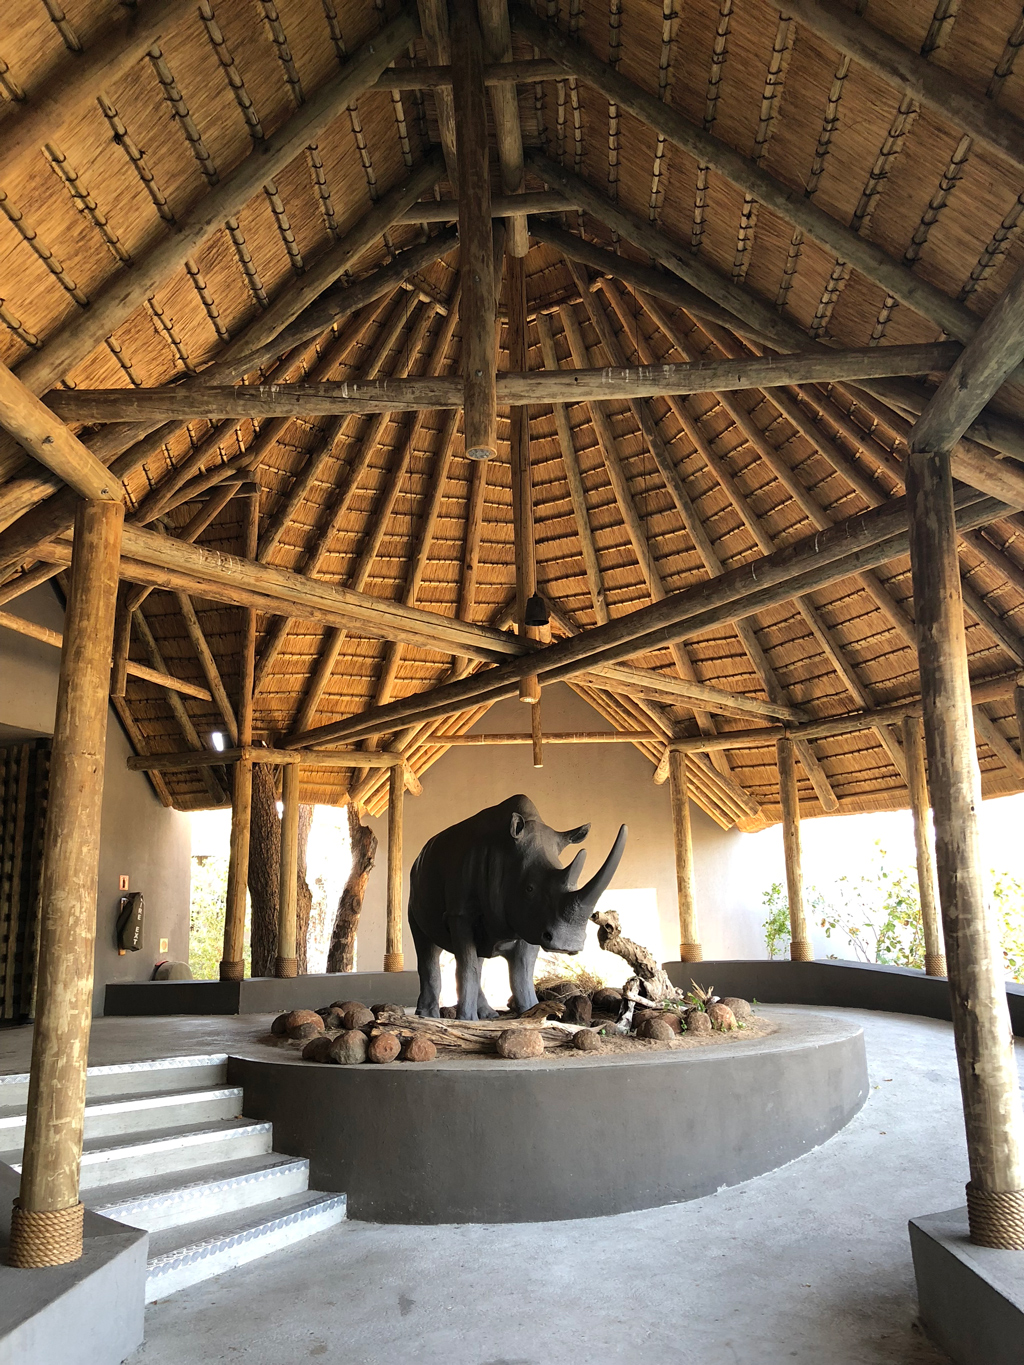 The main entrance of the Skukuza airport is right at the parking lot. To get to the baggage claim one would walk through this section guarded by the gient hippopotamus.